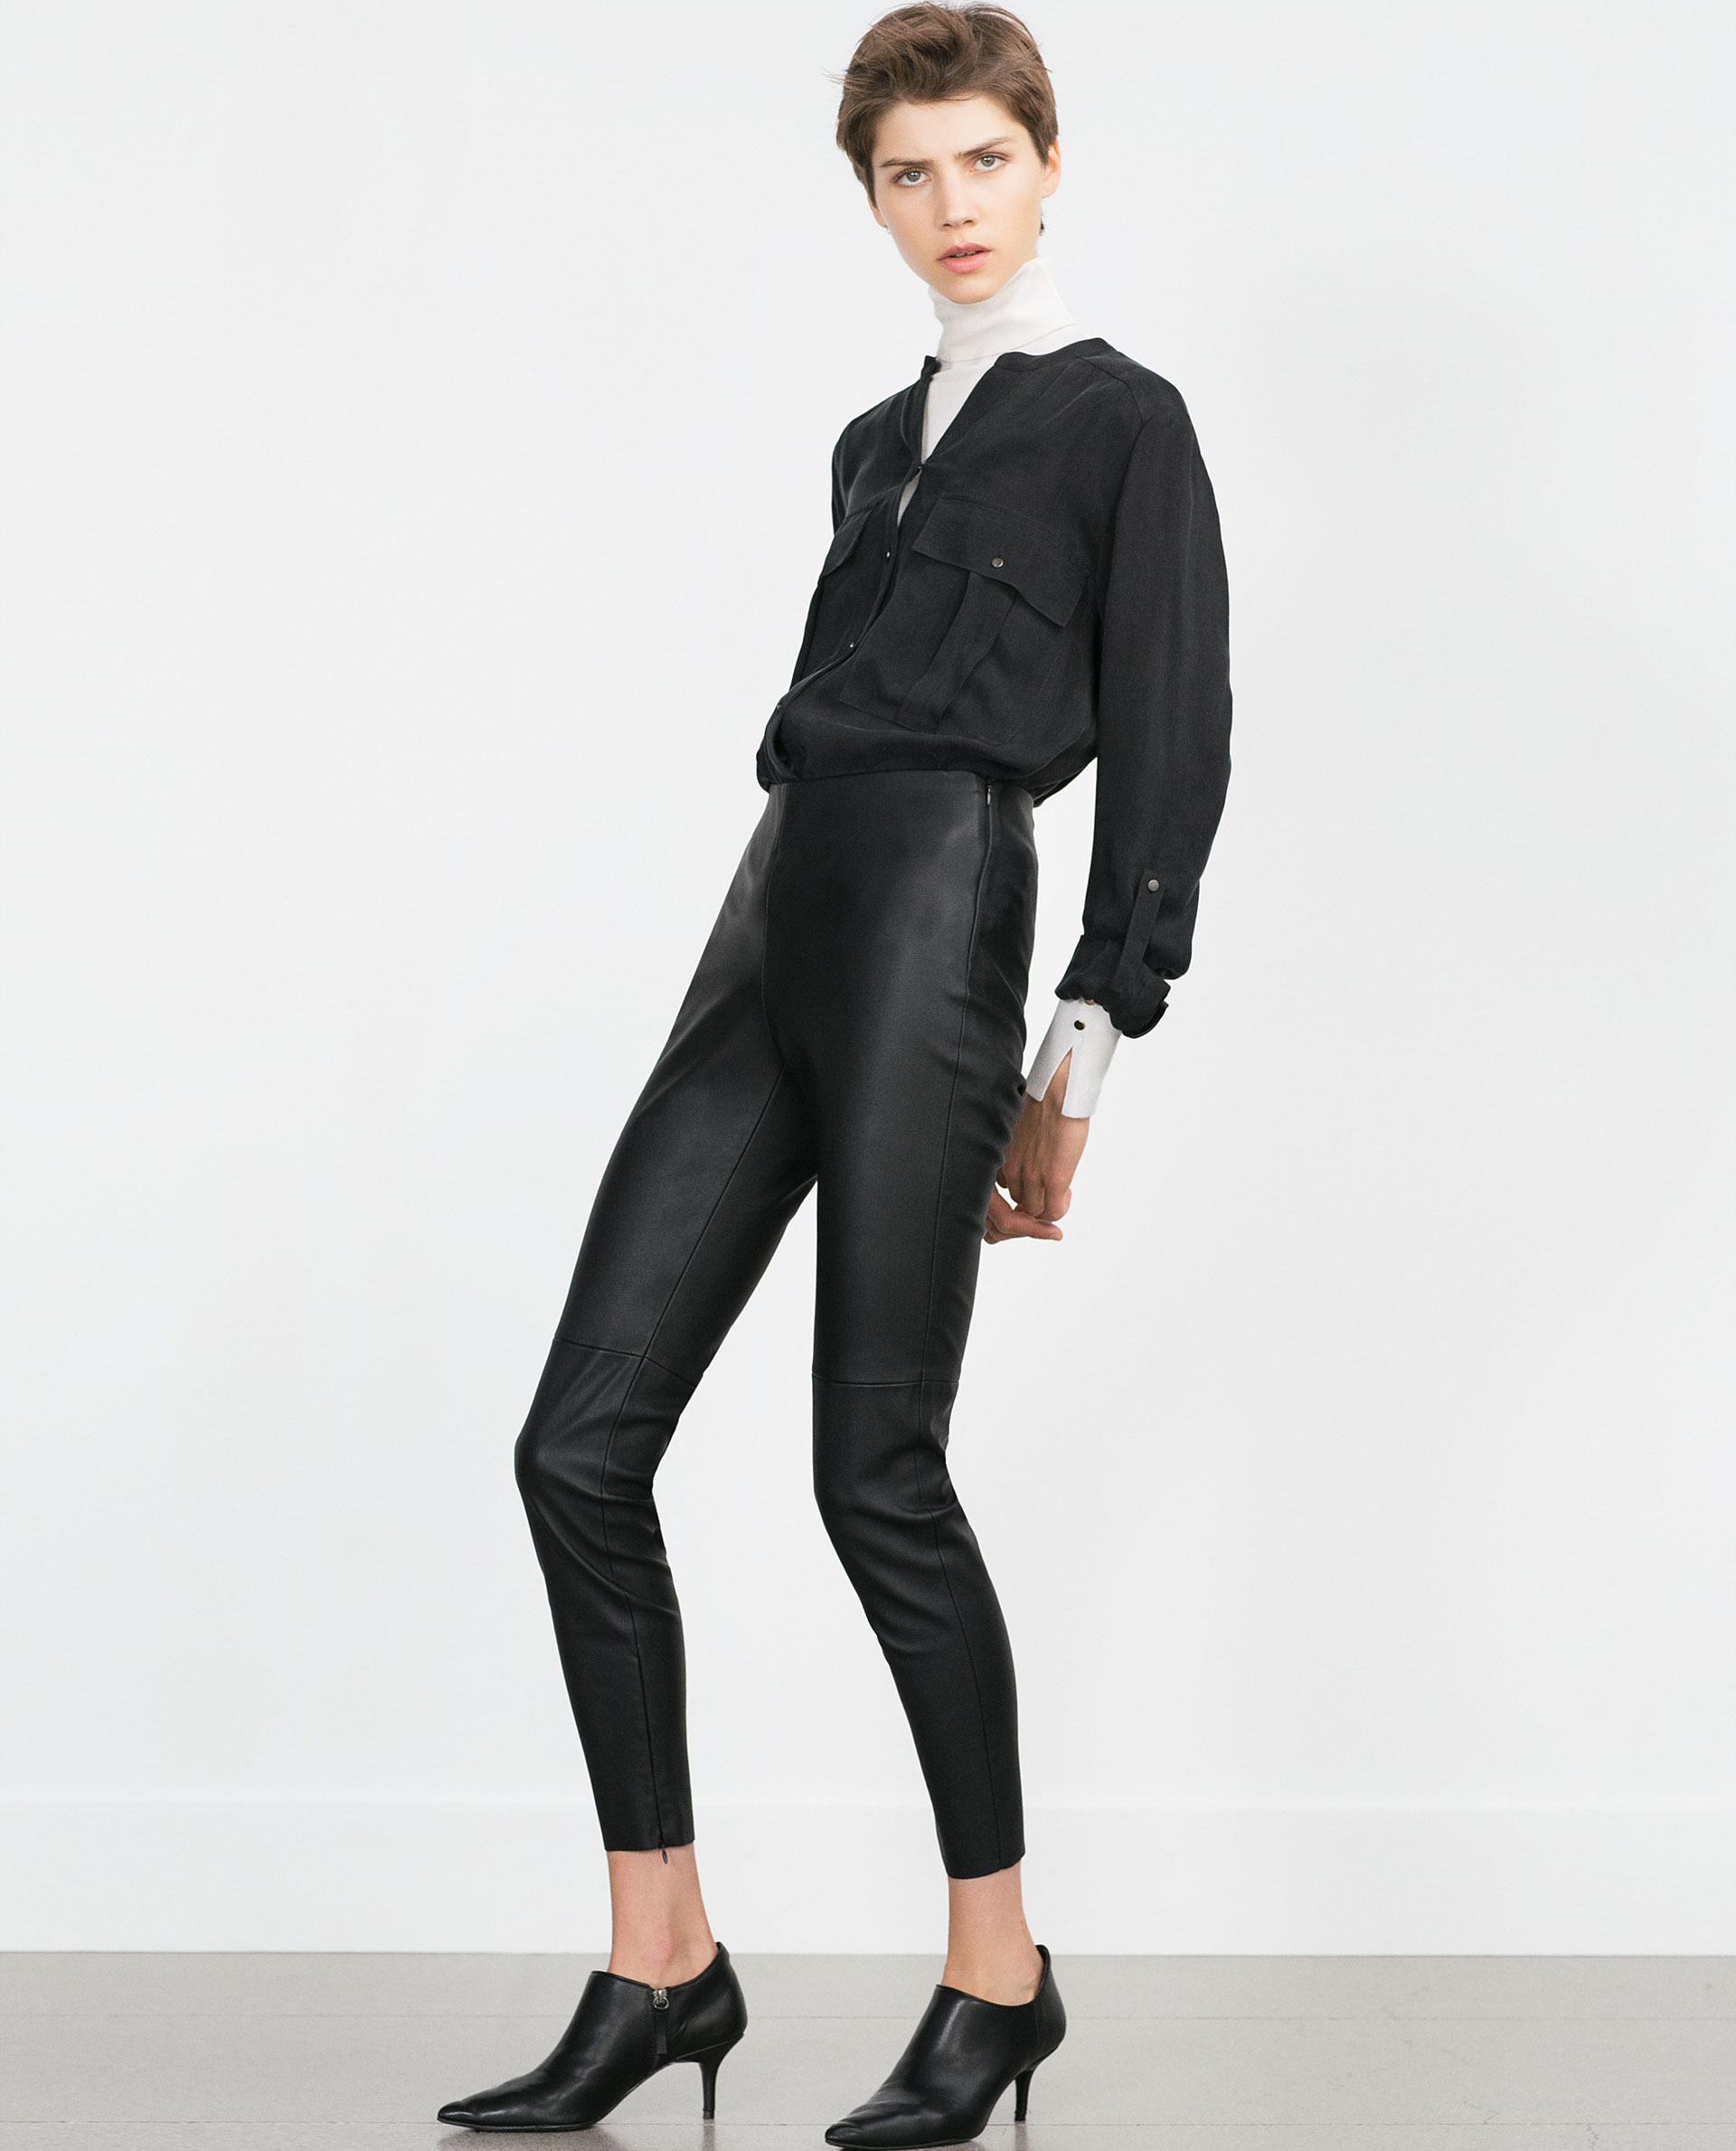 ebc7643b2023ce FAUX LEATHER LEGGINGS - Leggings - Trousers - Woman - COLLECTION SS16 | ZARA  United States